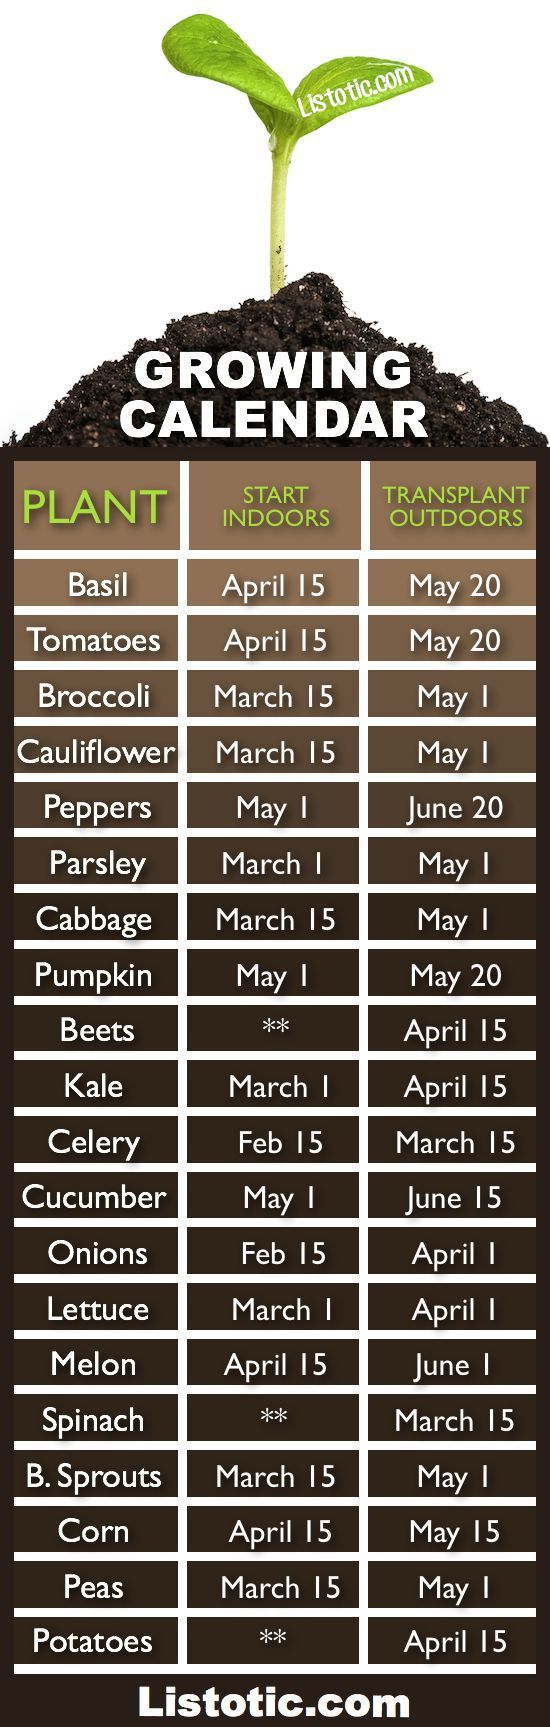 When to plant your vegetable garden.... When to plant what? Time to get started!